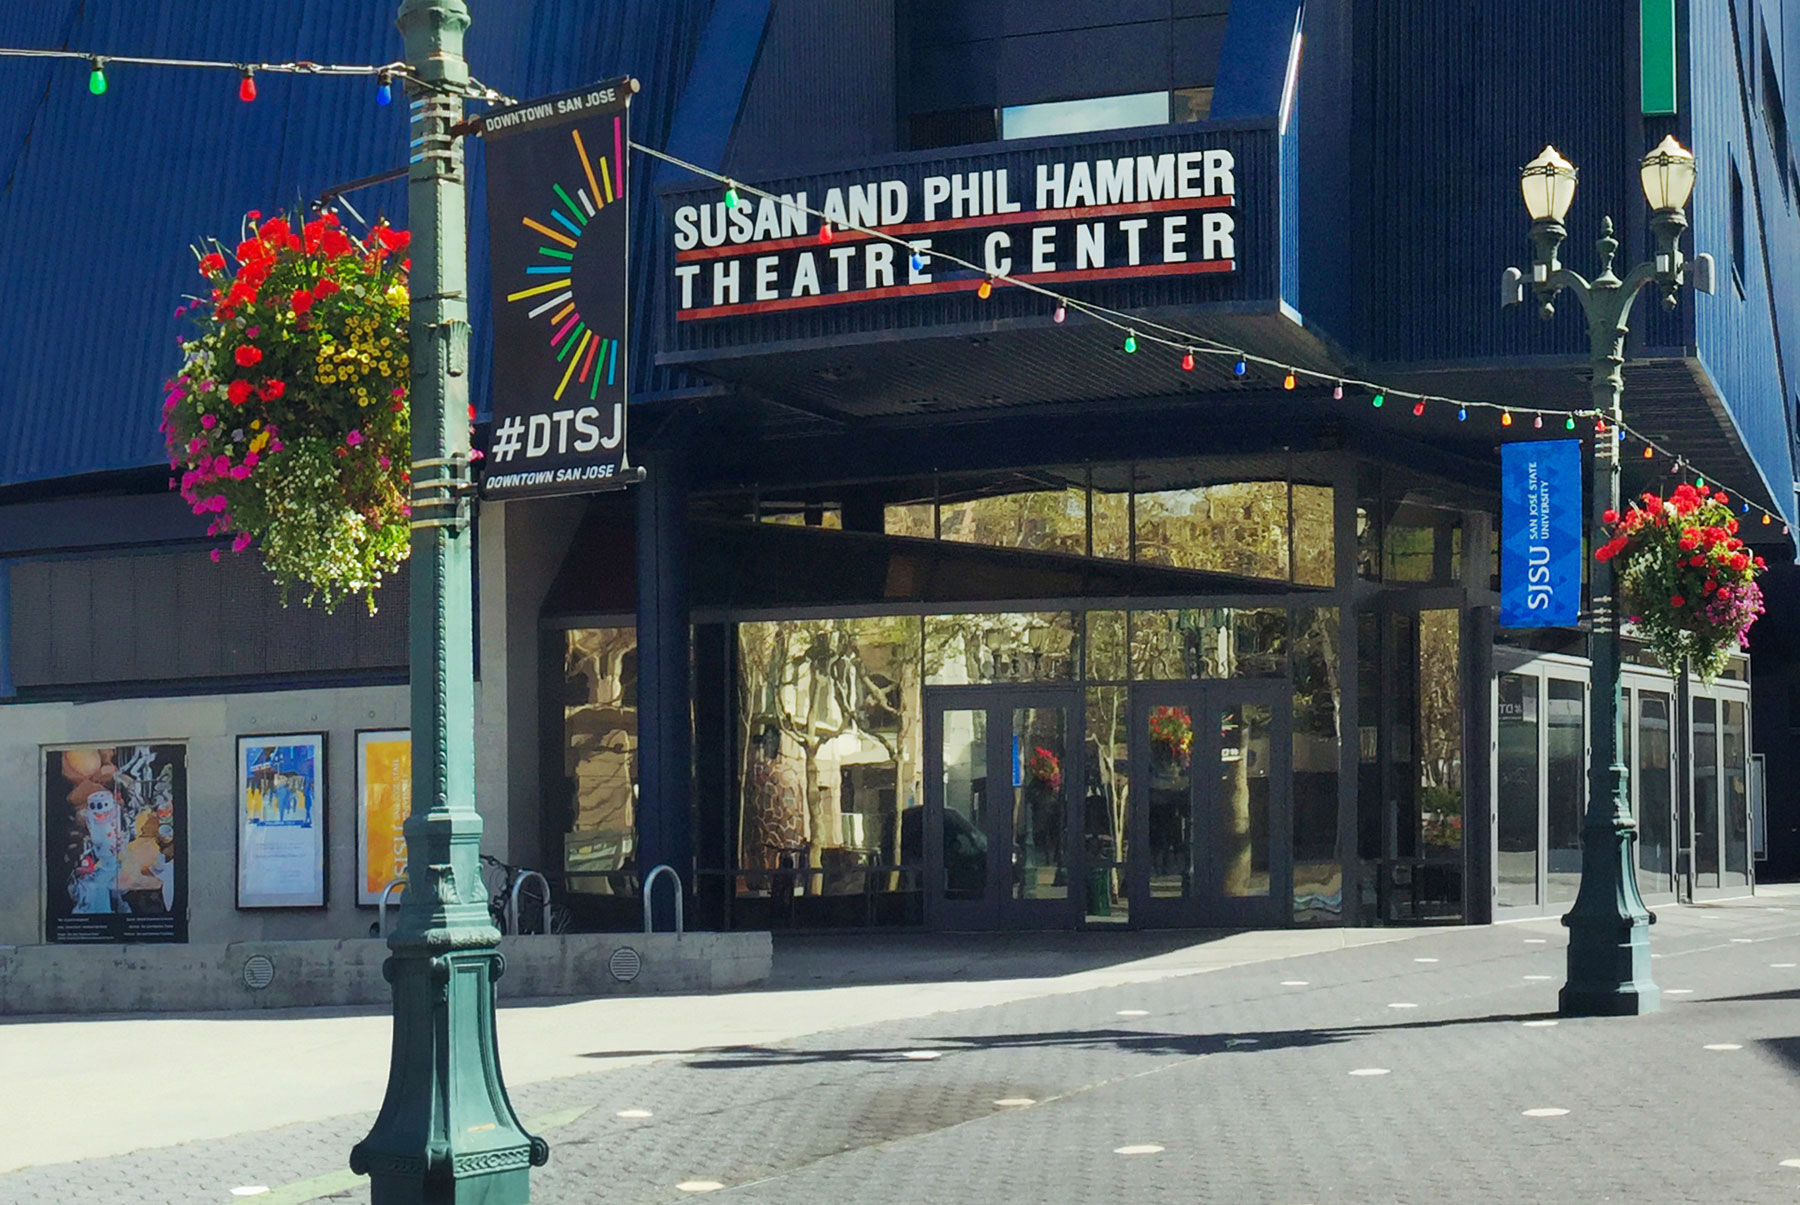 Hammer Theatre Center located in hte heart of downtown San Jose.